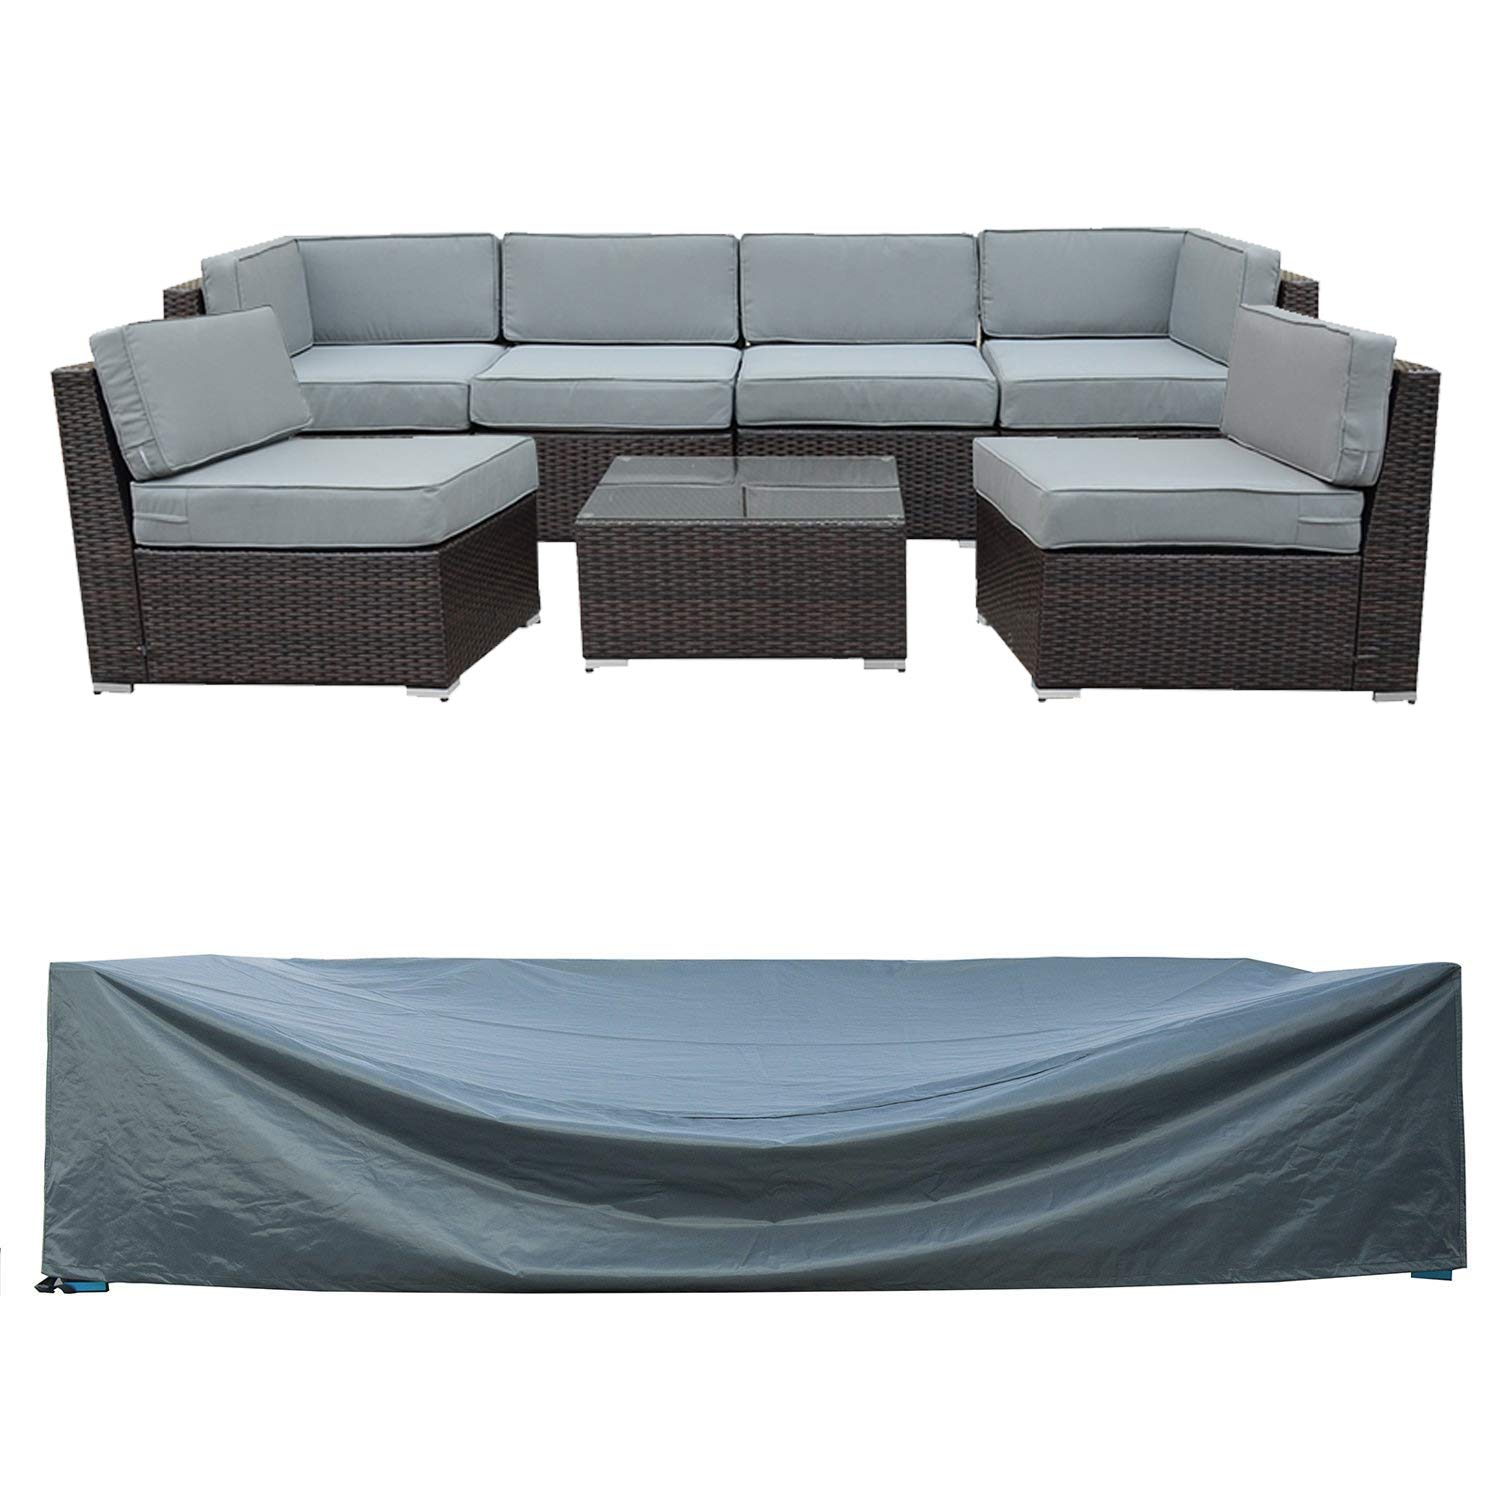 Large Outdoor Furniture Covers Taihan